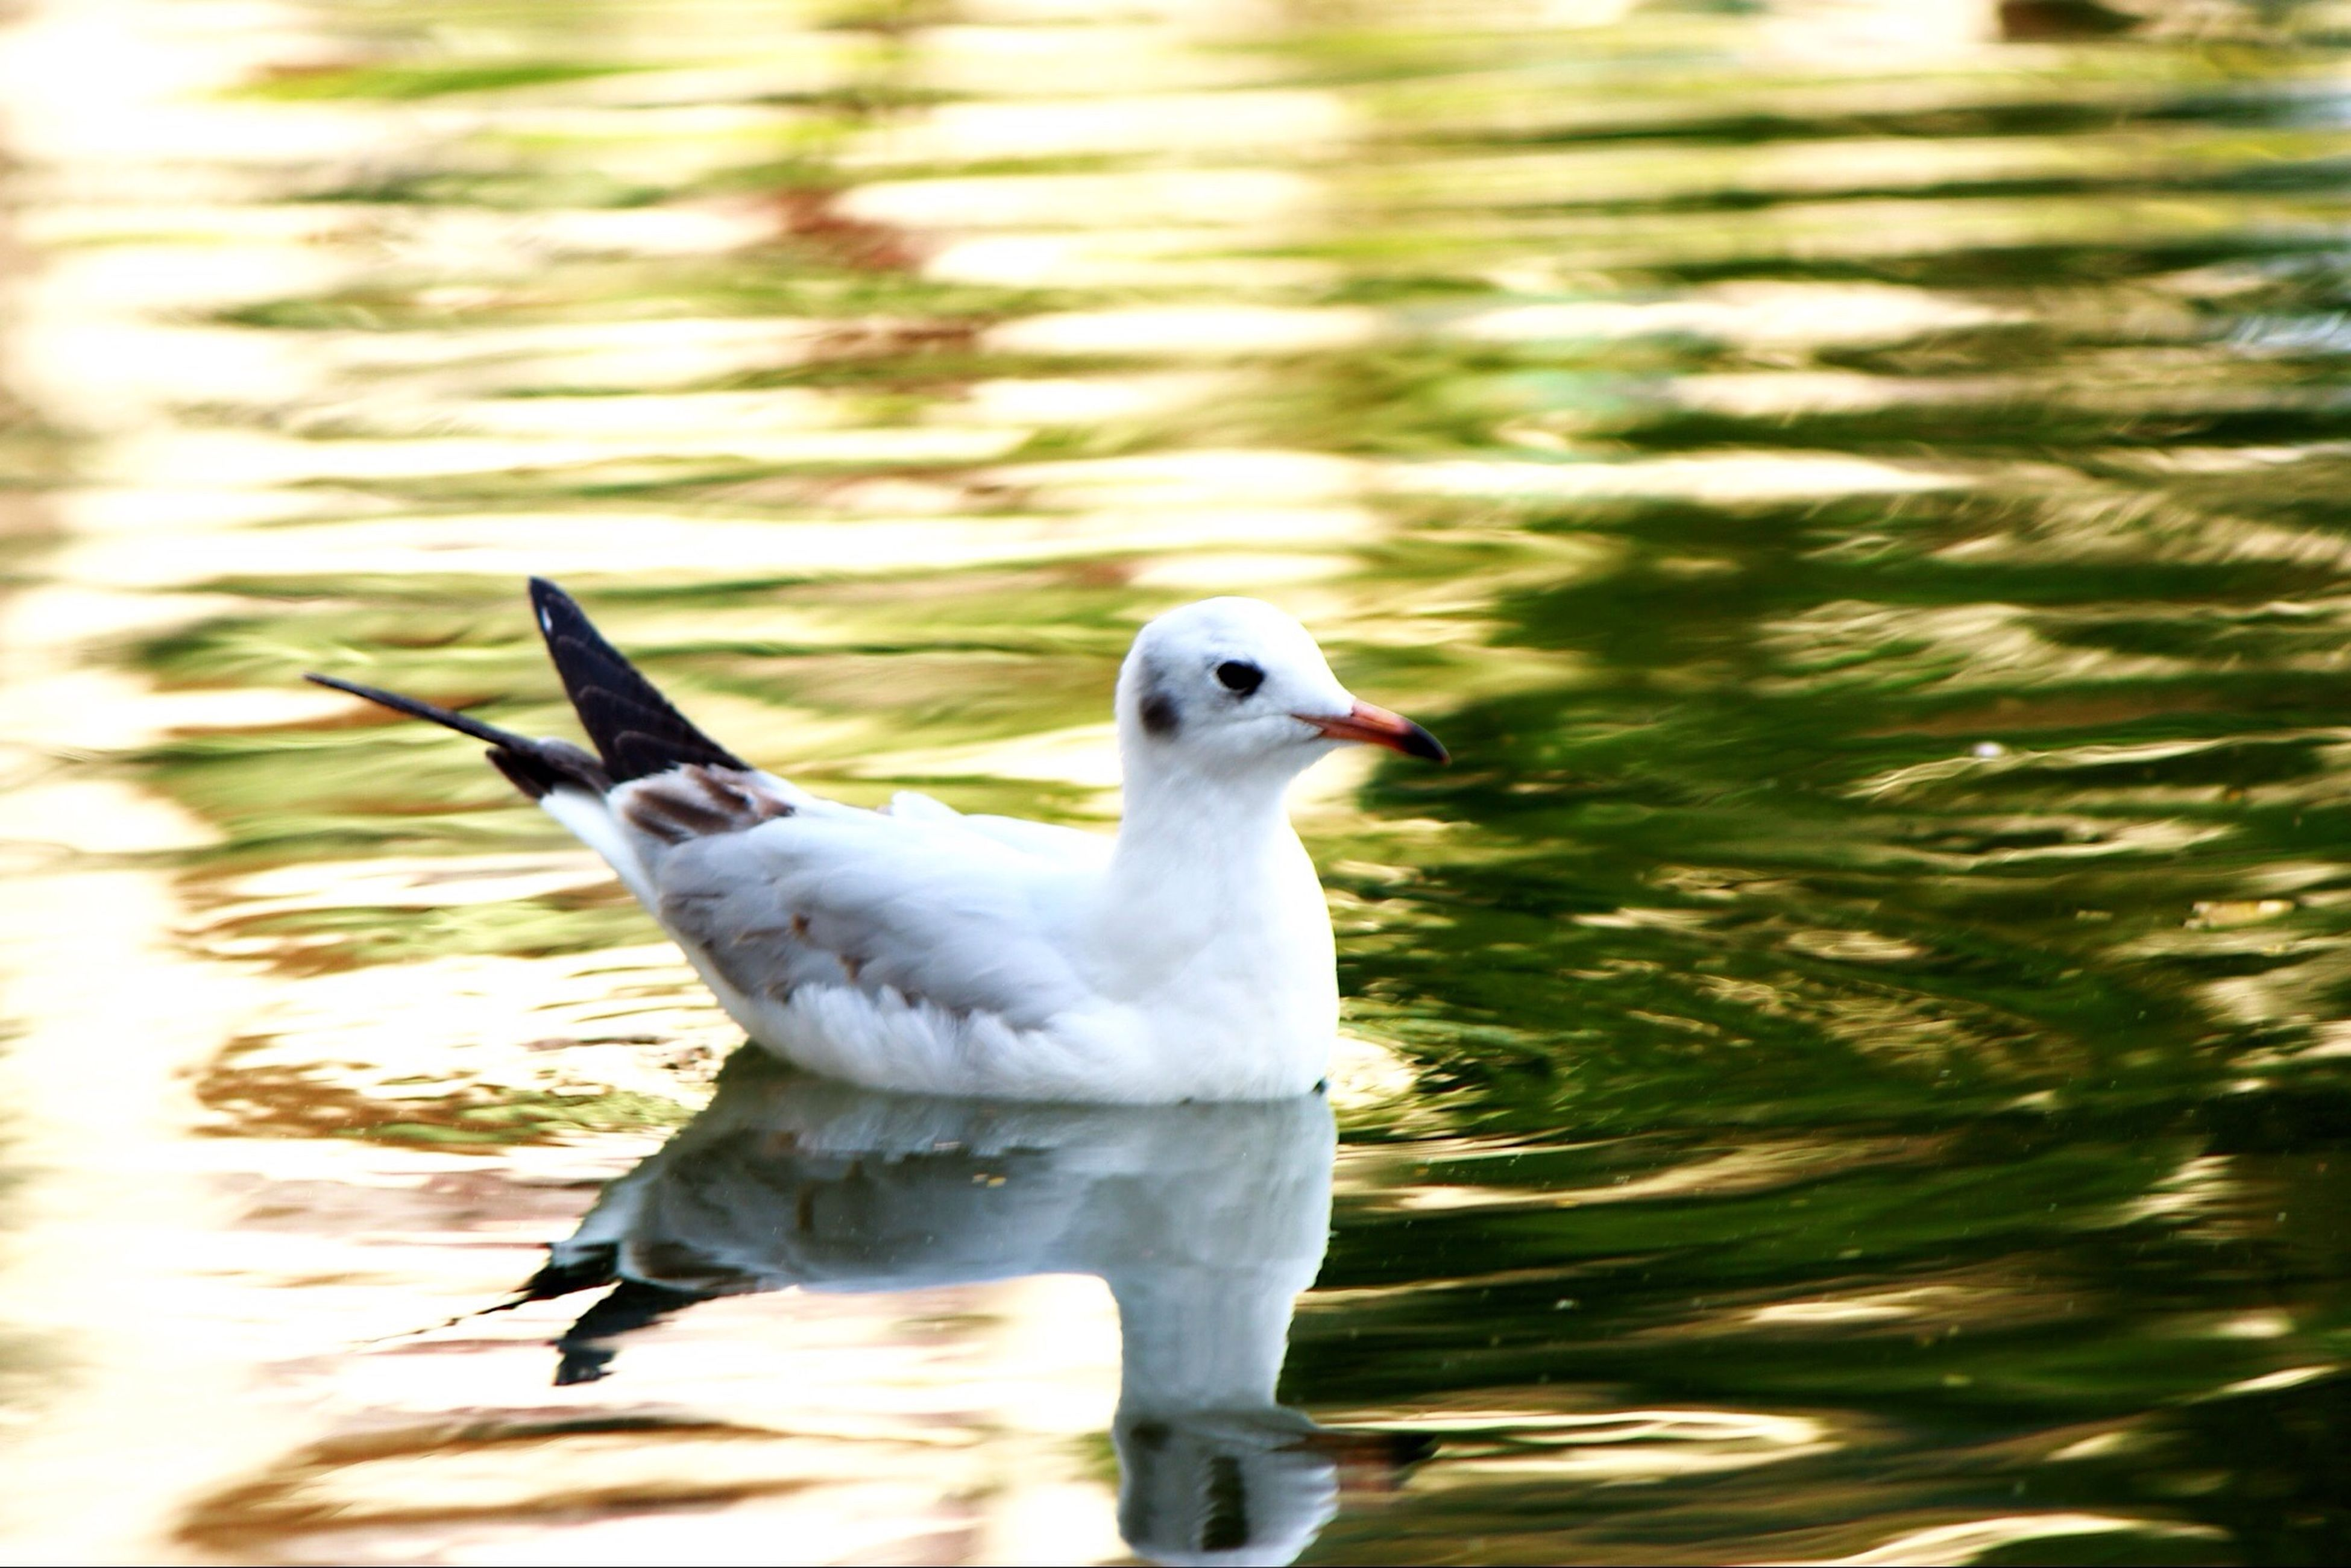 bird, animal themes, animals in the wild, one animal, wildlife, water, seagull, white color, focus on foreground, spread wings, nature, flying, waterfront, close-up, lake, beak, outdoors, no people, day, side view